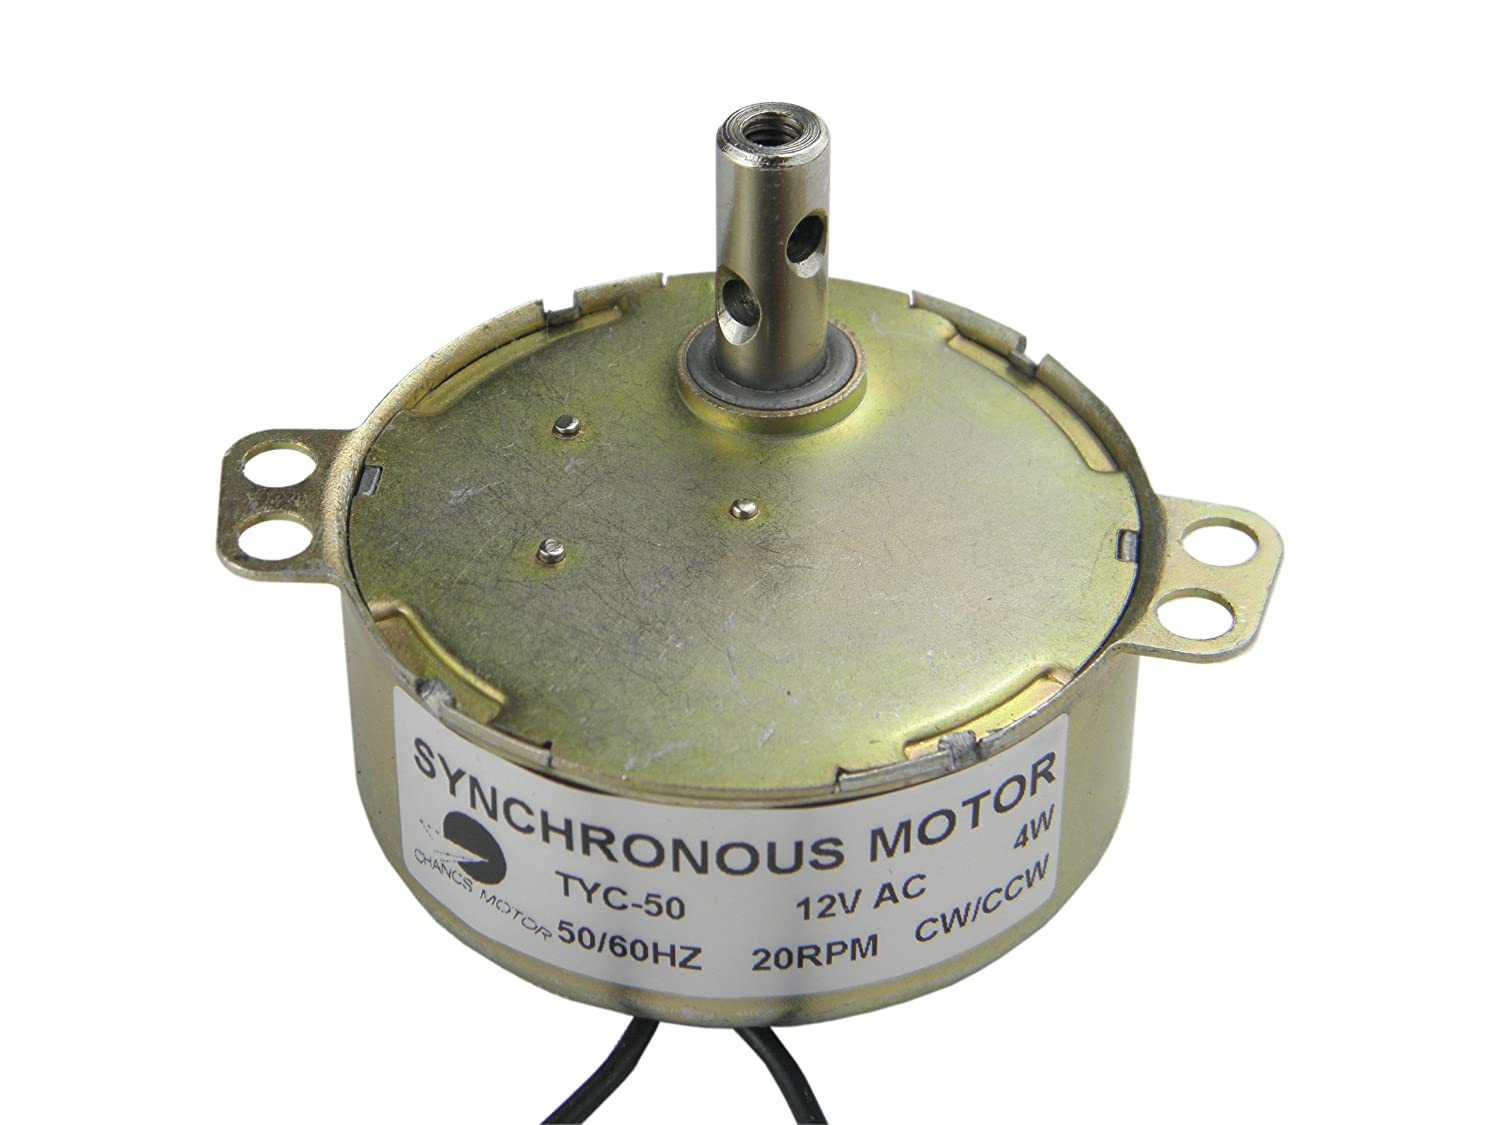 CHANCS Synchronous Motor TYC-50 12V Electric Motor AC 20-24RPM CW/CCW 4W CHANCS MOTOR